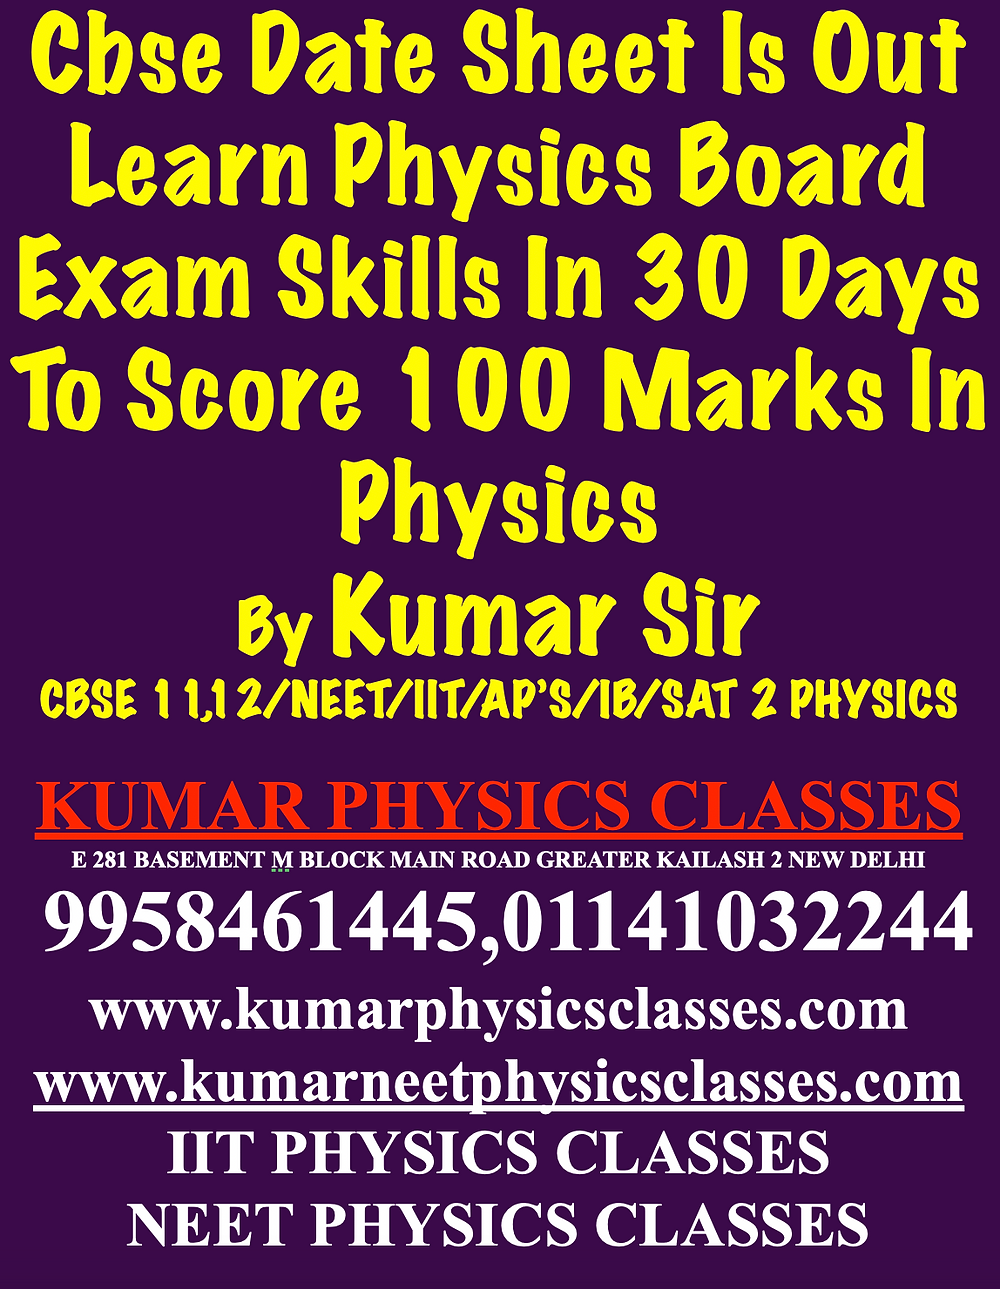 Best Physics Tutor For Cbse Physics